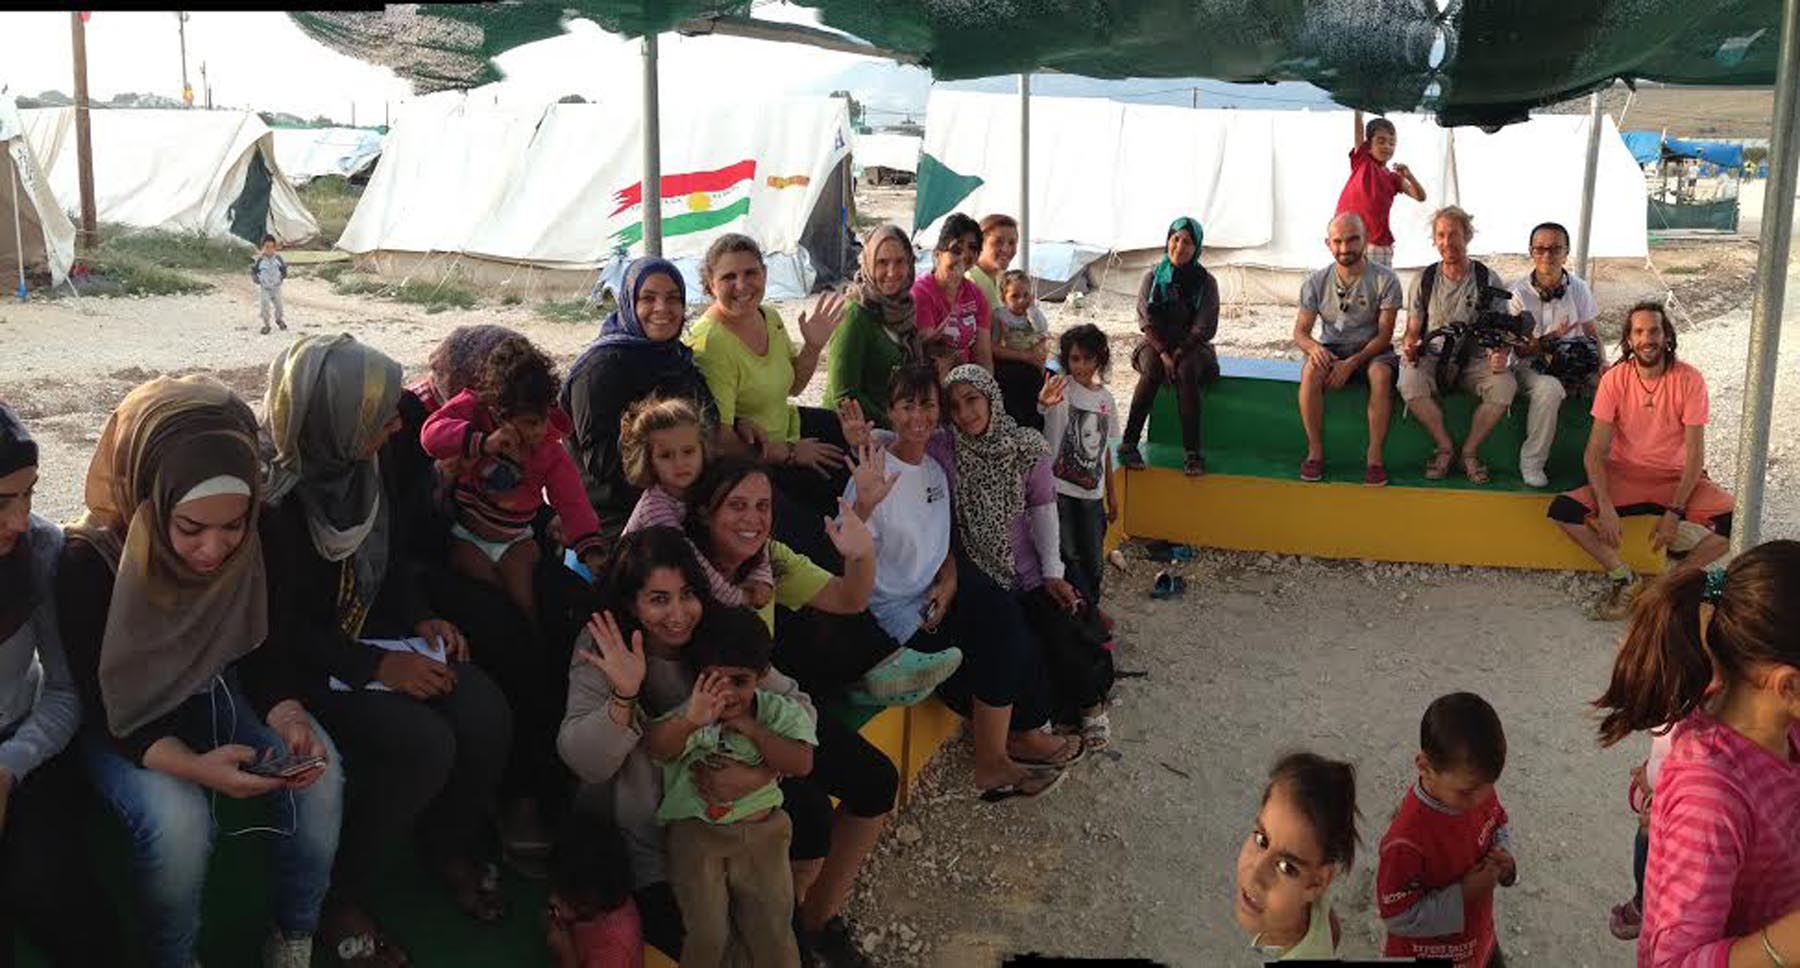 Refugees group together in a tent